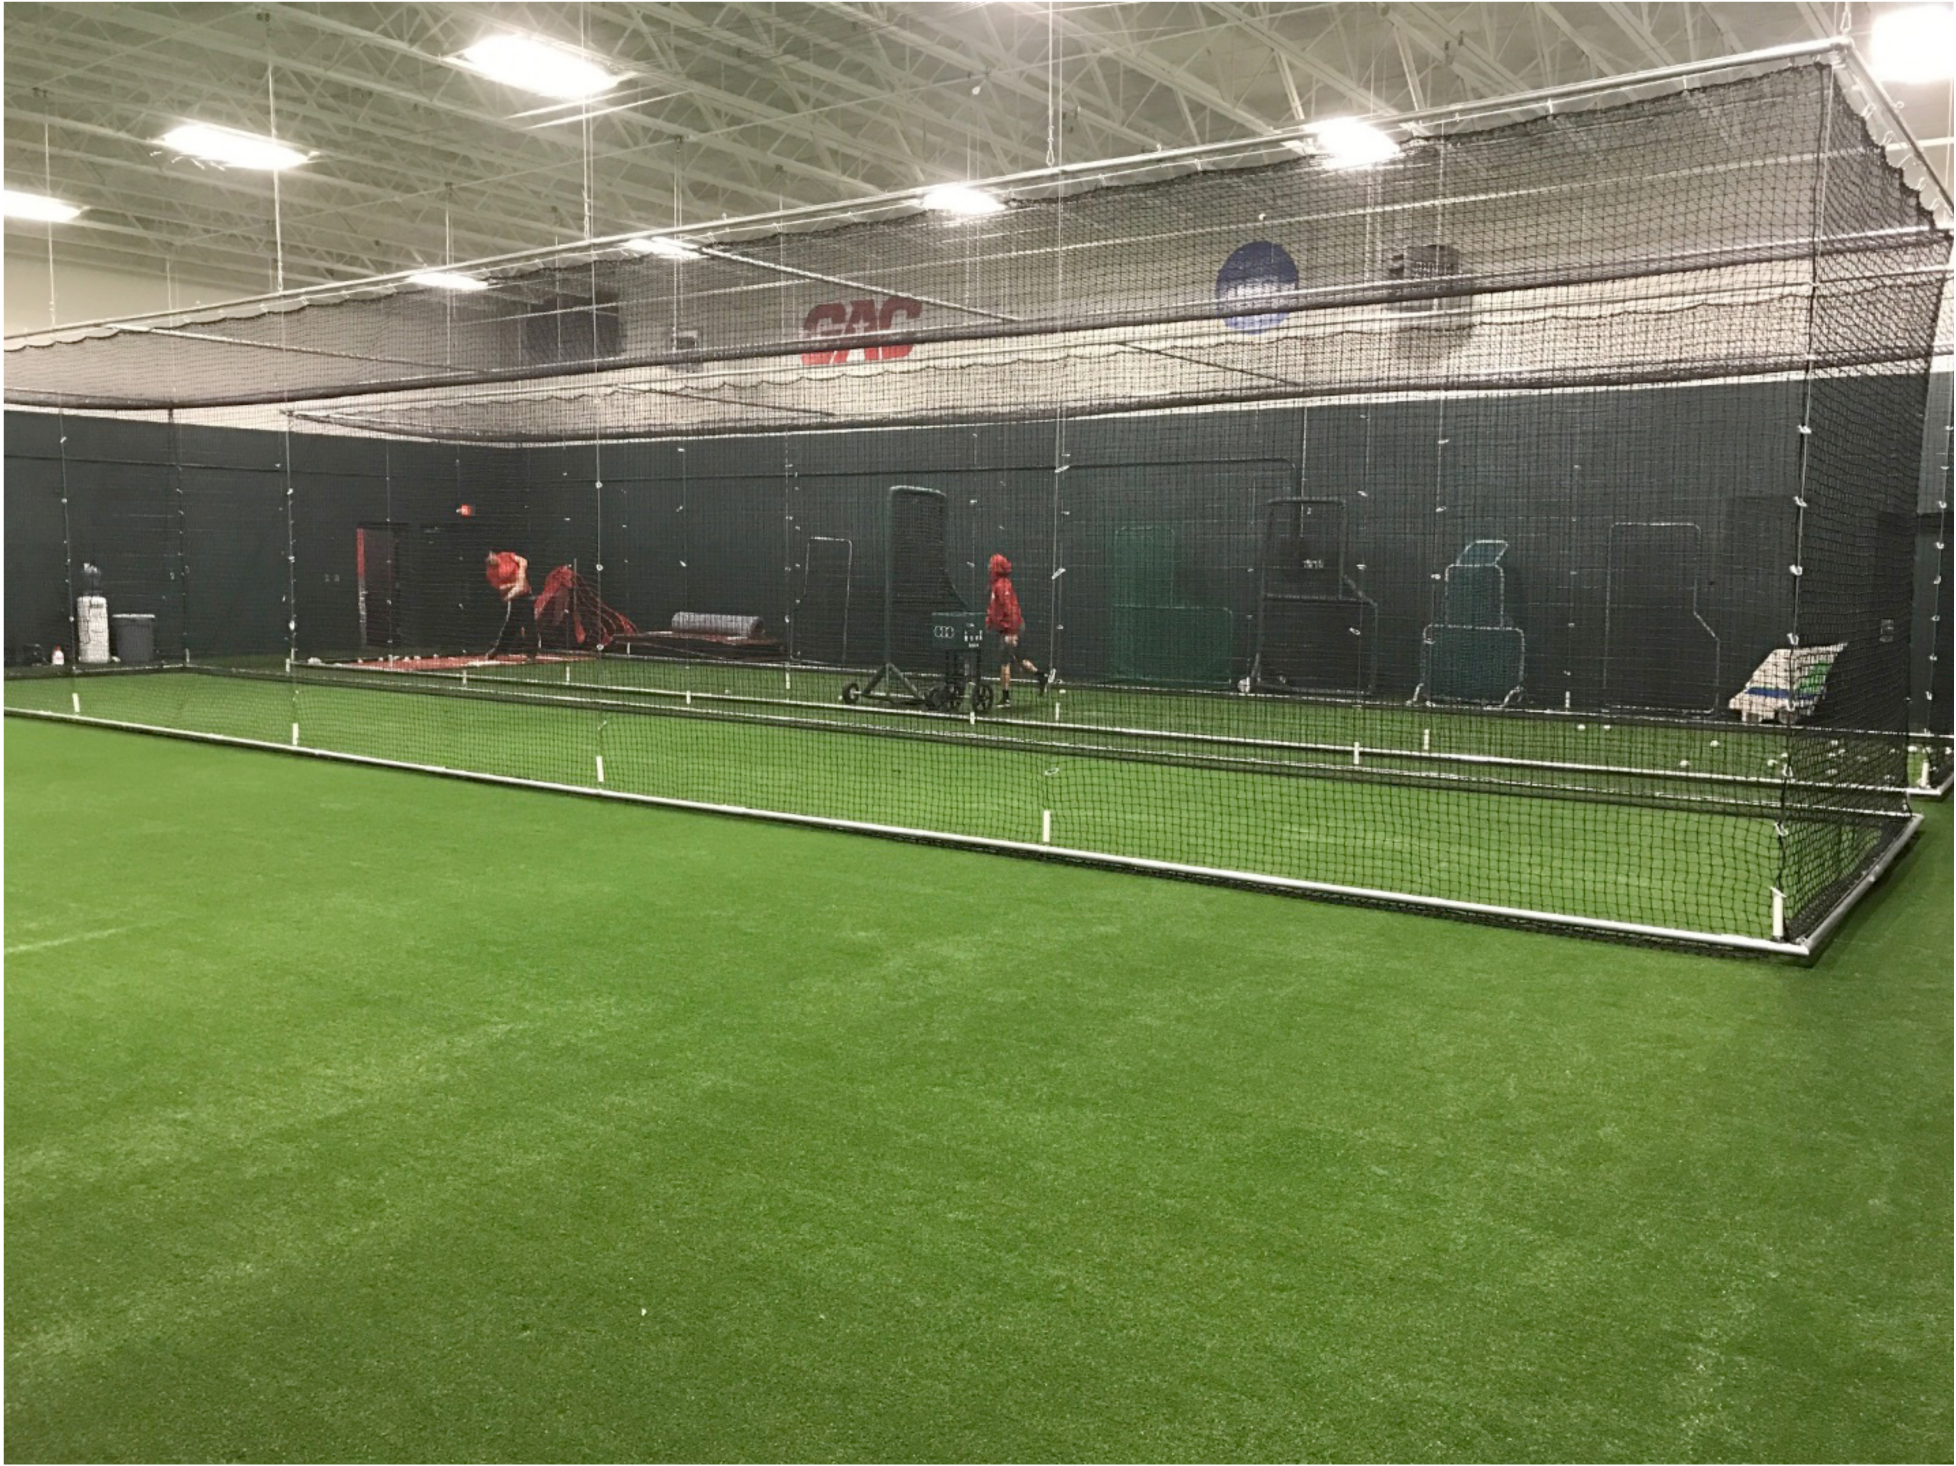 Practice this Baseball Season with your own Batting Cage